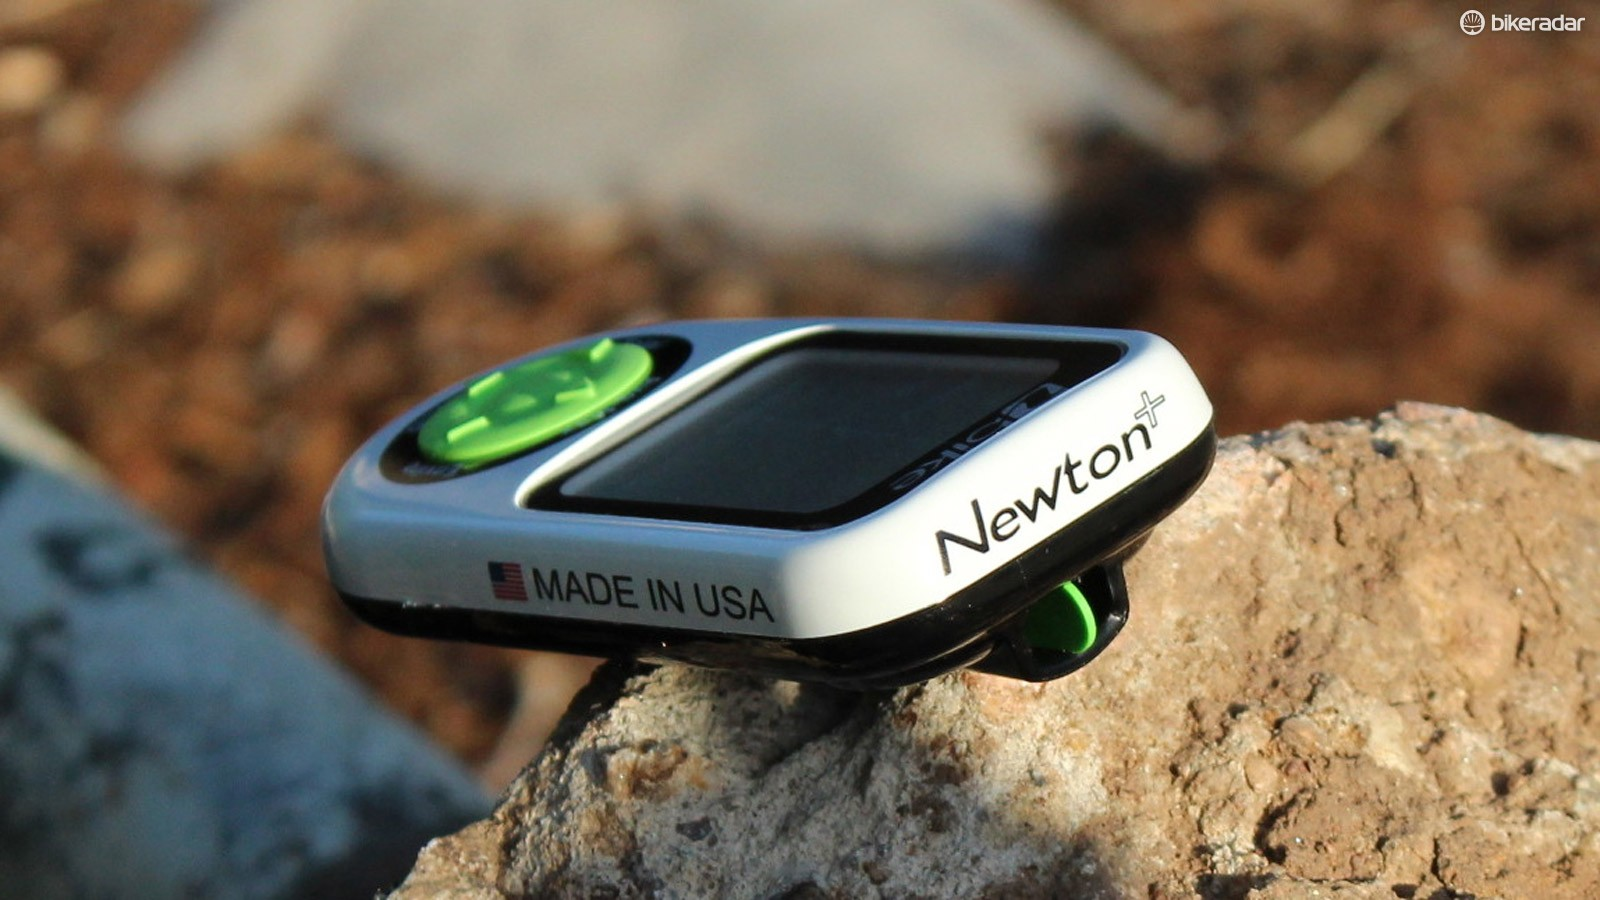 iBike's Newton power meter uses a fair number of calculations to measure the forces opposing a rider - including the wind, with the green-spliced port at center - to determine watt output